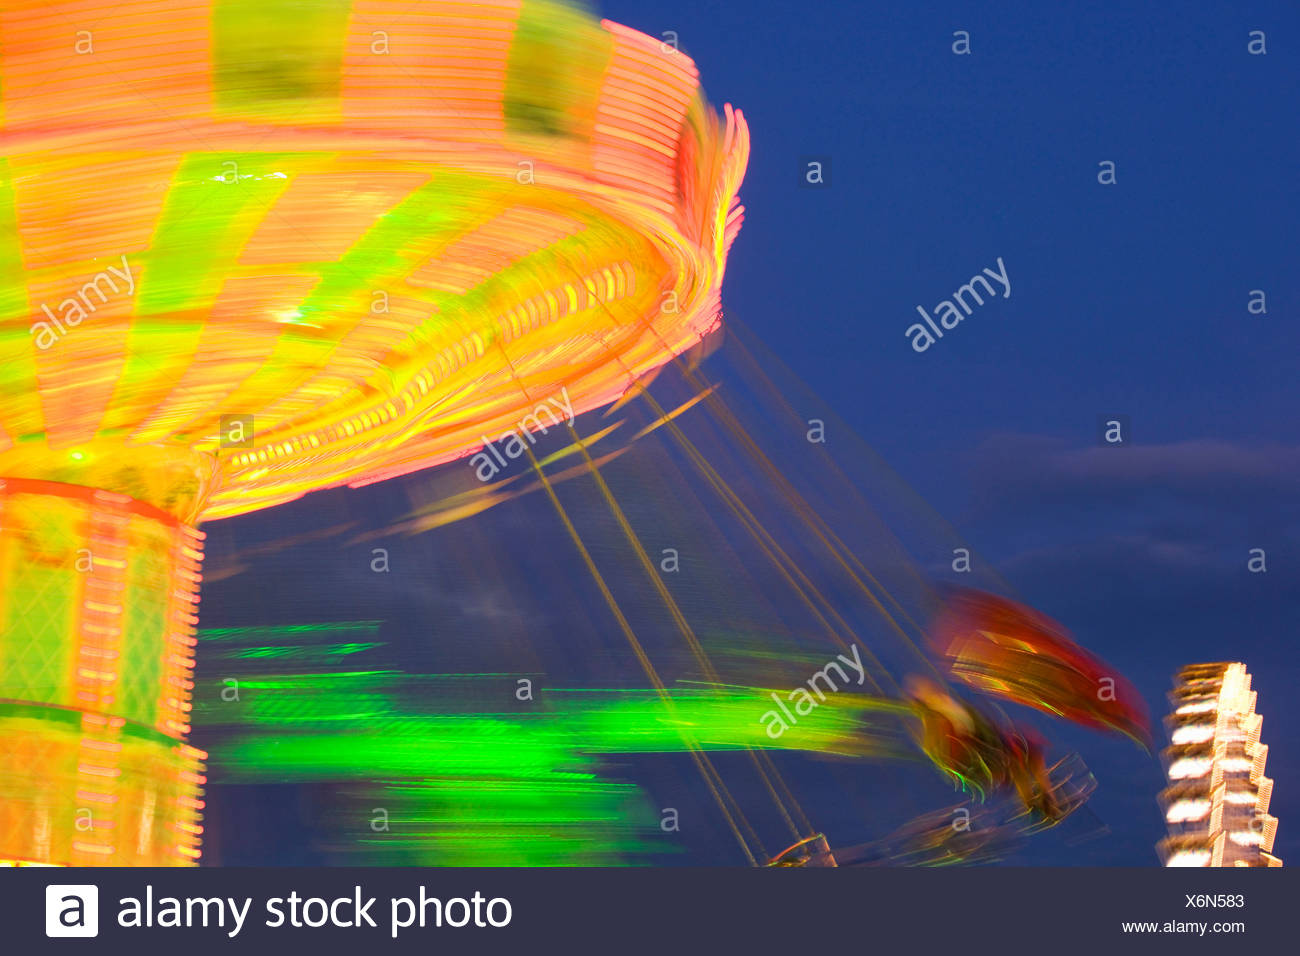 Rotating carrousel by night - Stock Image